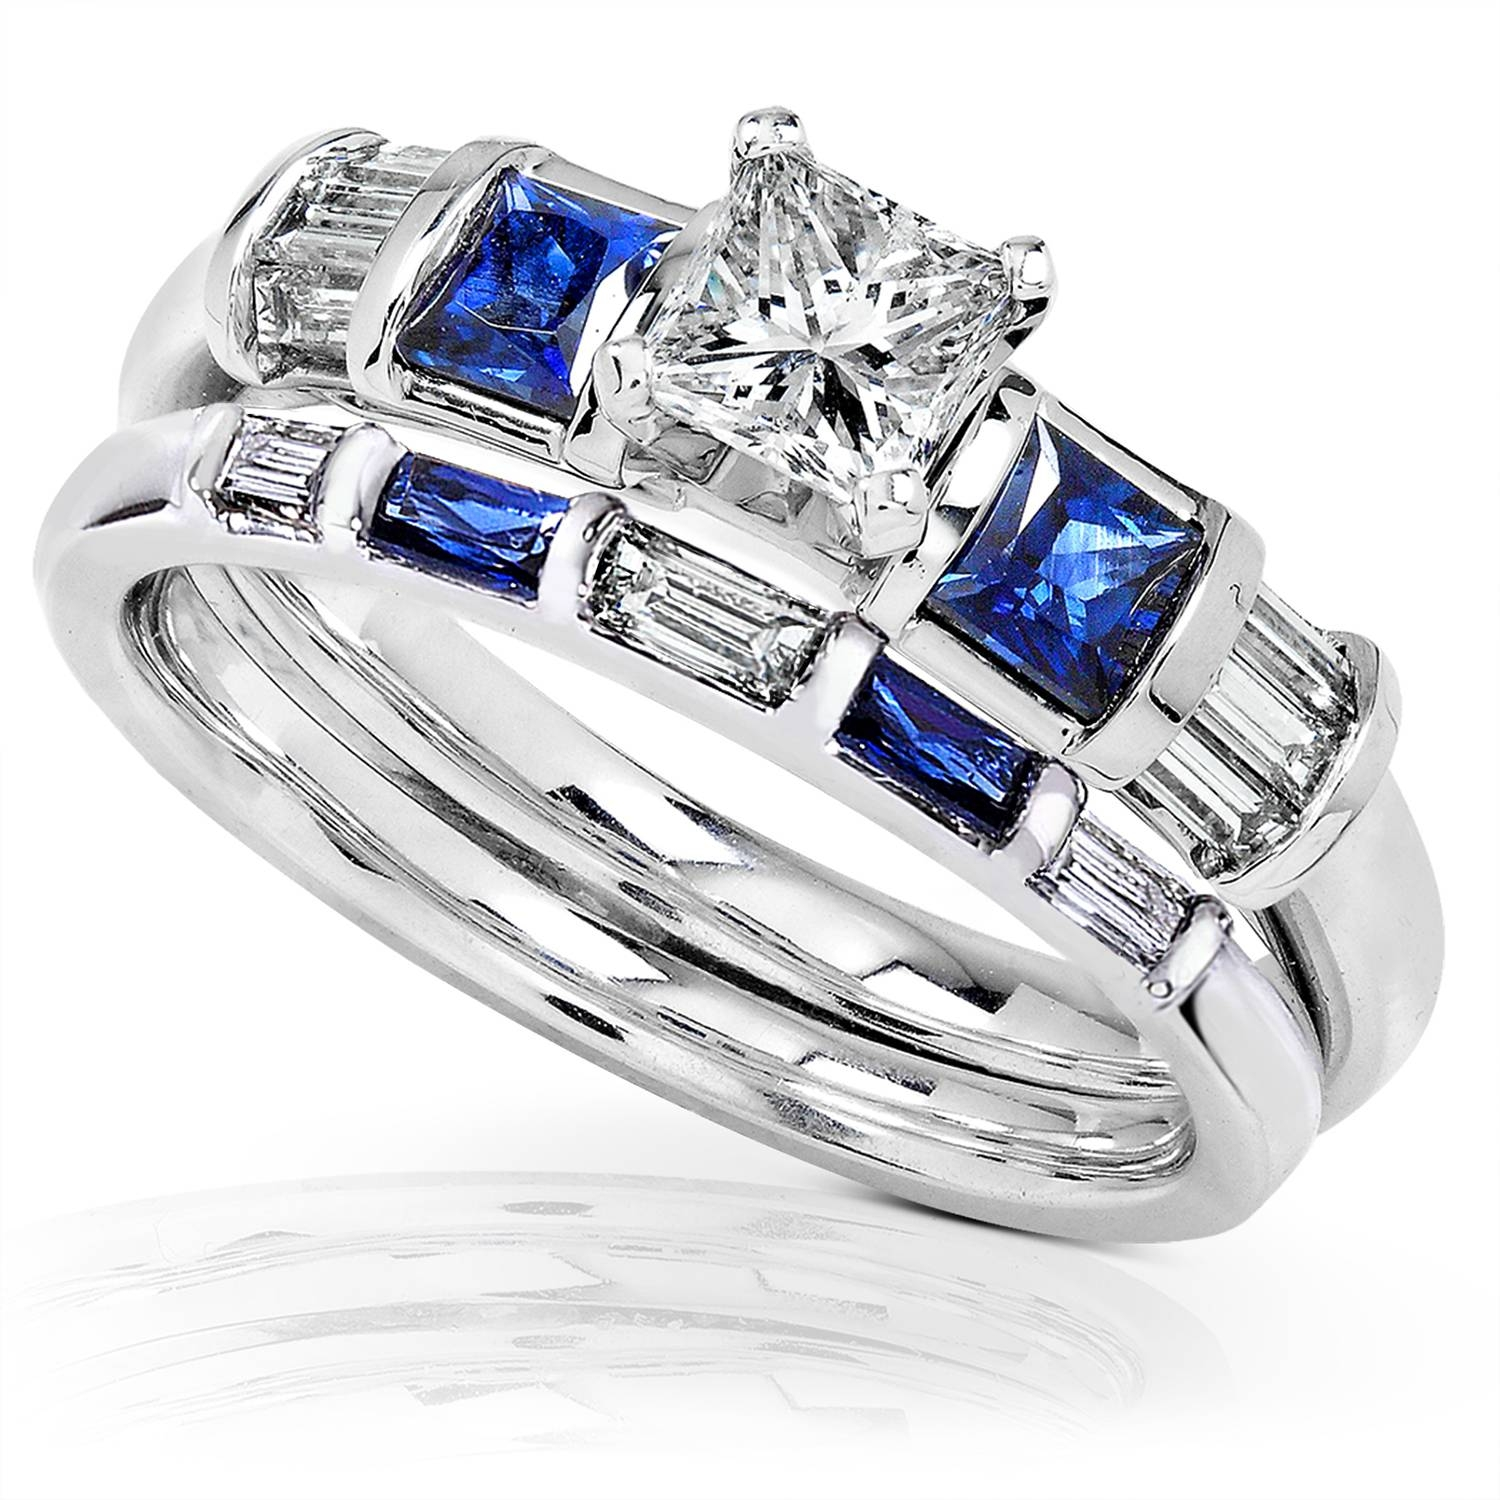 Blue Sapphire & Diamond Wedding Rings Set 1 Carat (ctw) In 14k With Diamond Wedding Rings (View 5 of 15)